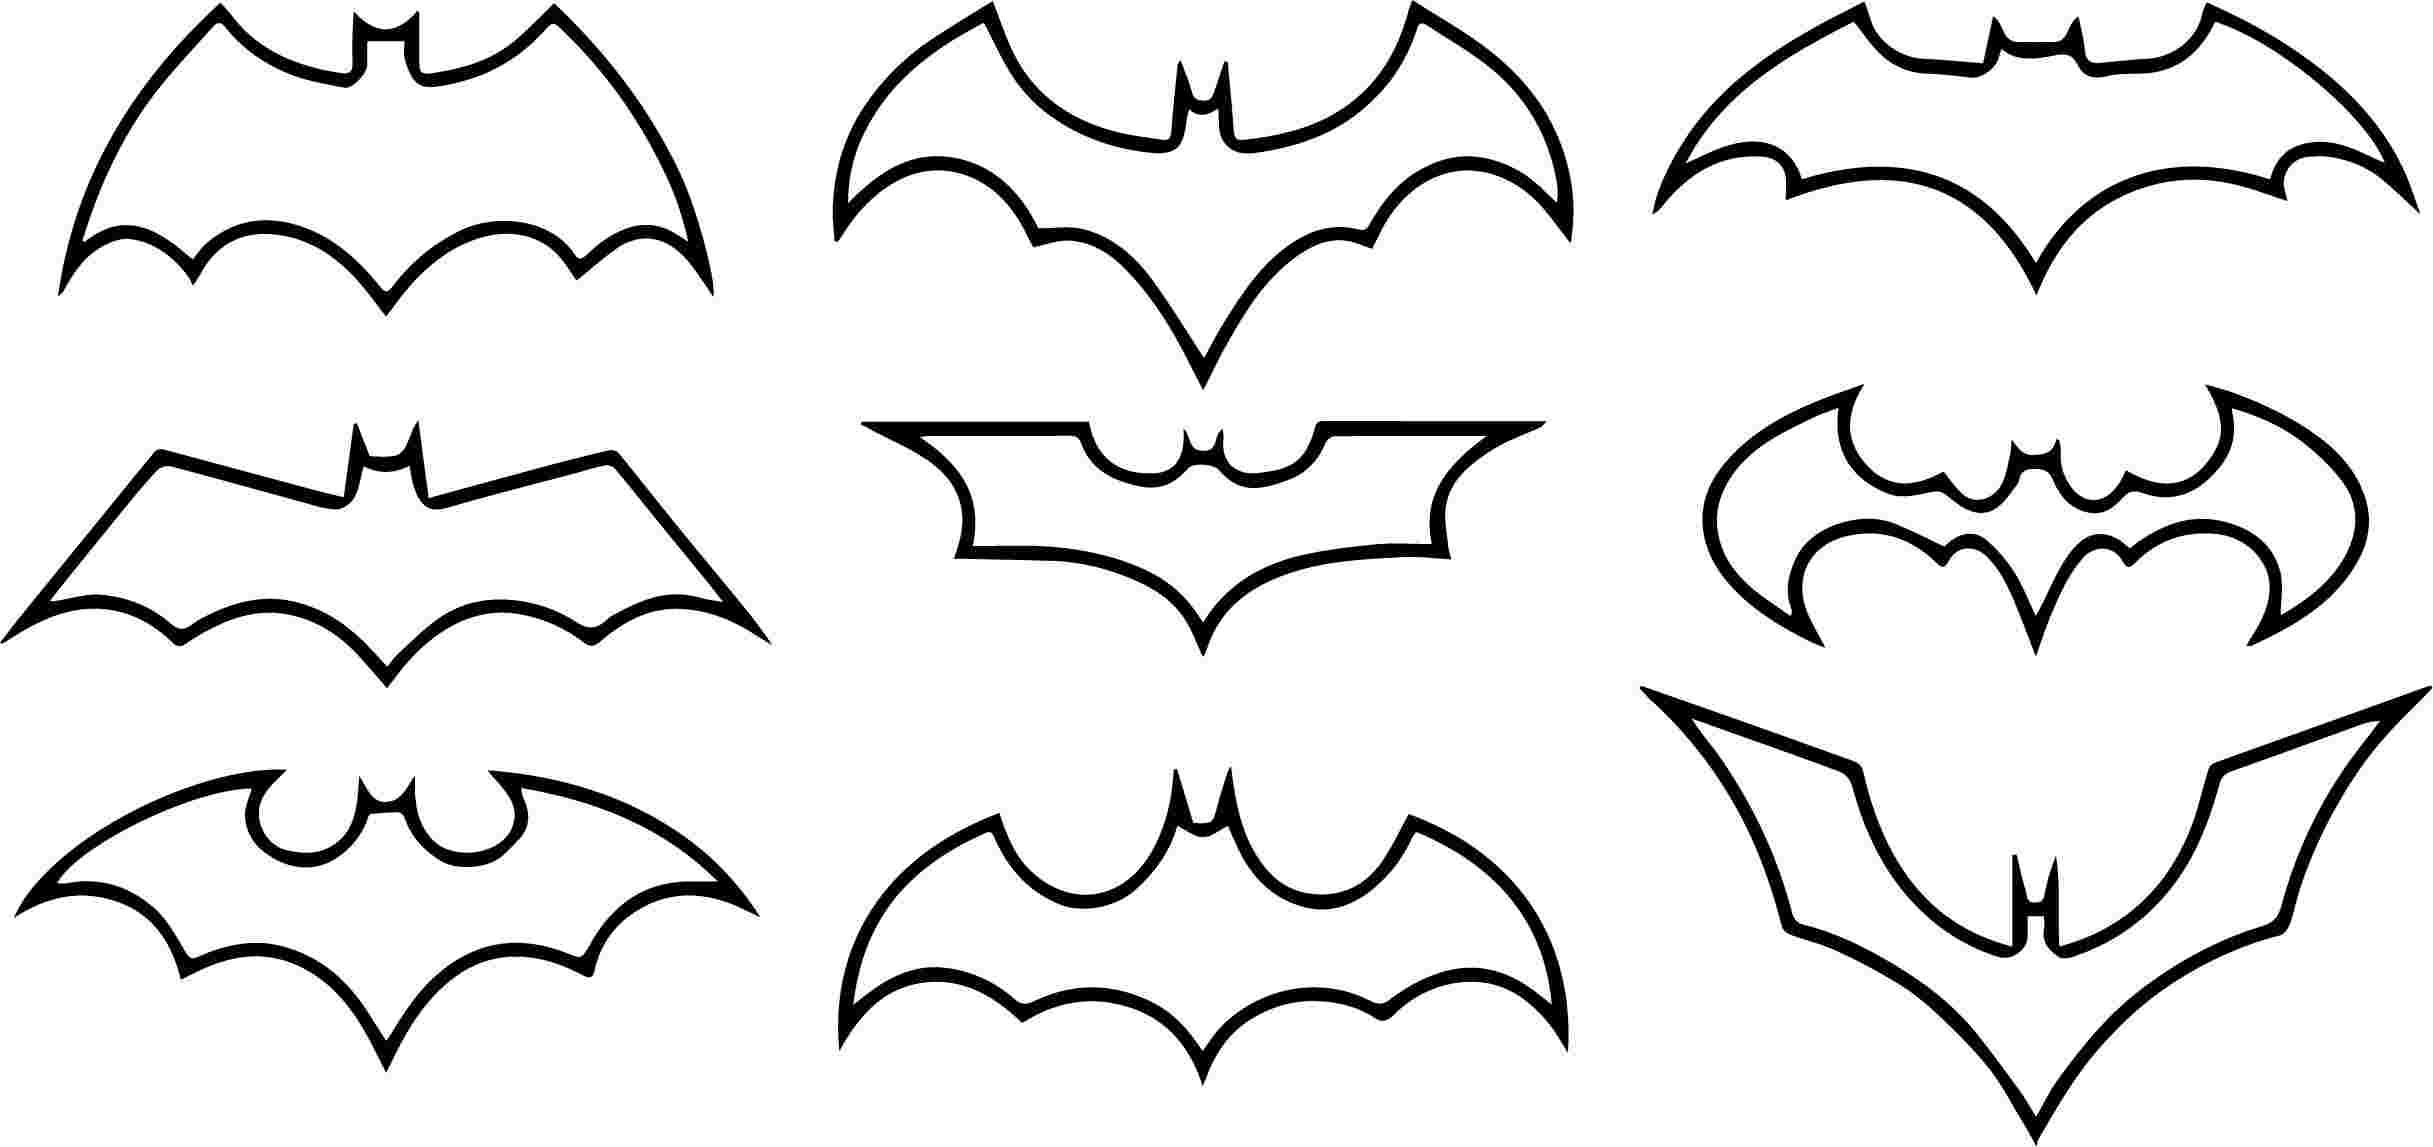 Coloring Festival Symbol Coloring Pages More Than 24 Printable Coloring Symbolcoloring Symbolcoloringpage Symbolcoloringpages Symbol En 2020 Batman Symbole